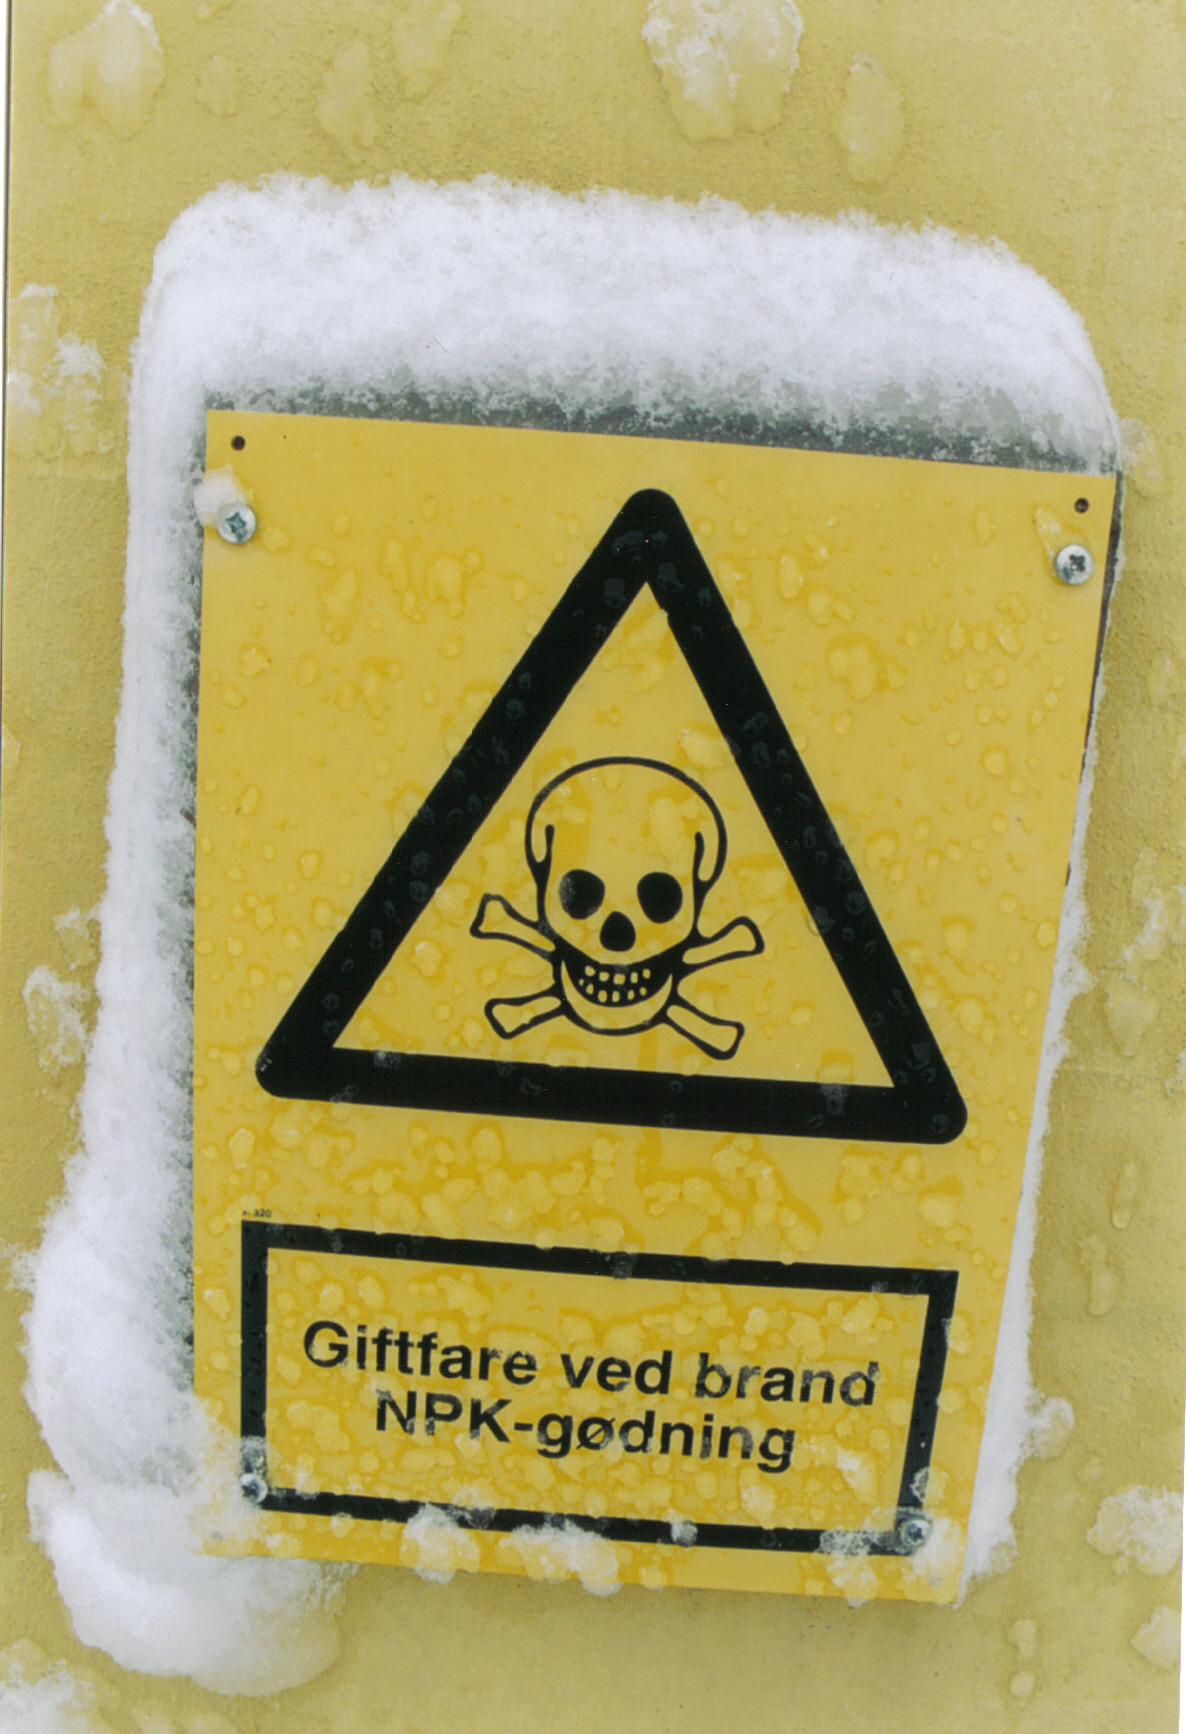 toxic sewer gases kill three workers